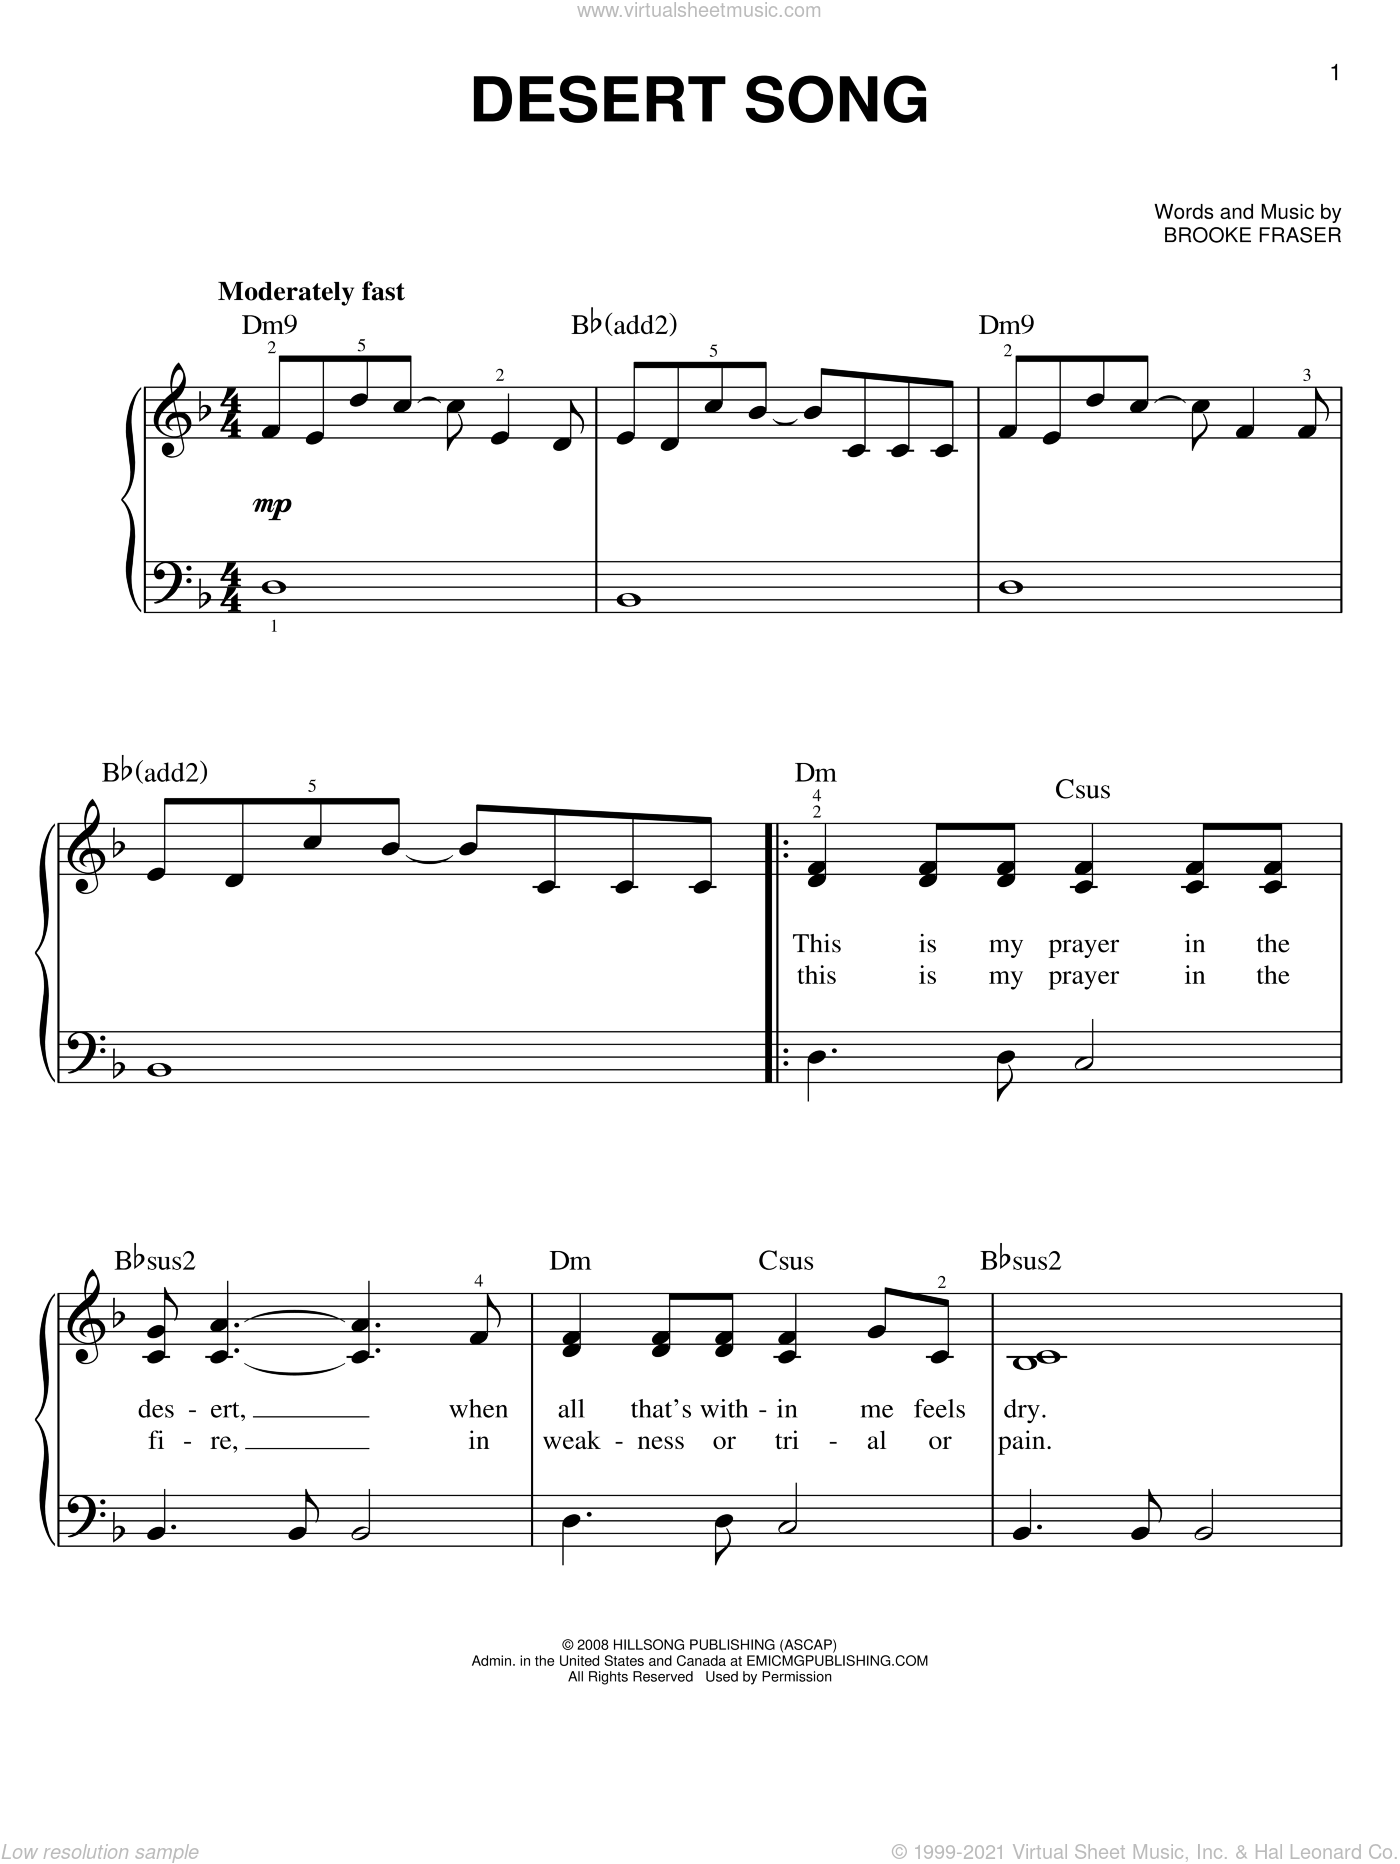 Desert Song sheet music for piano solo by Brooke Fraser, easy skill level